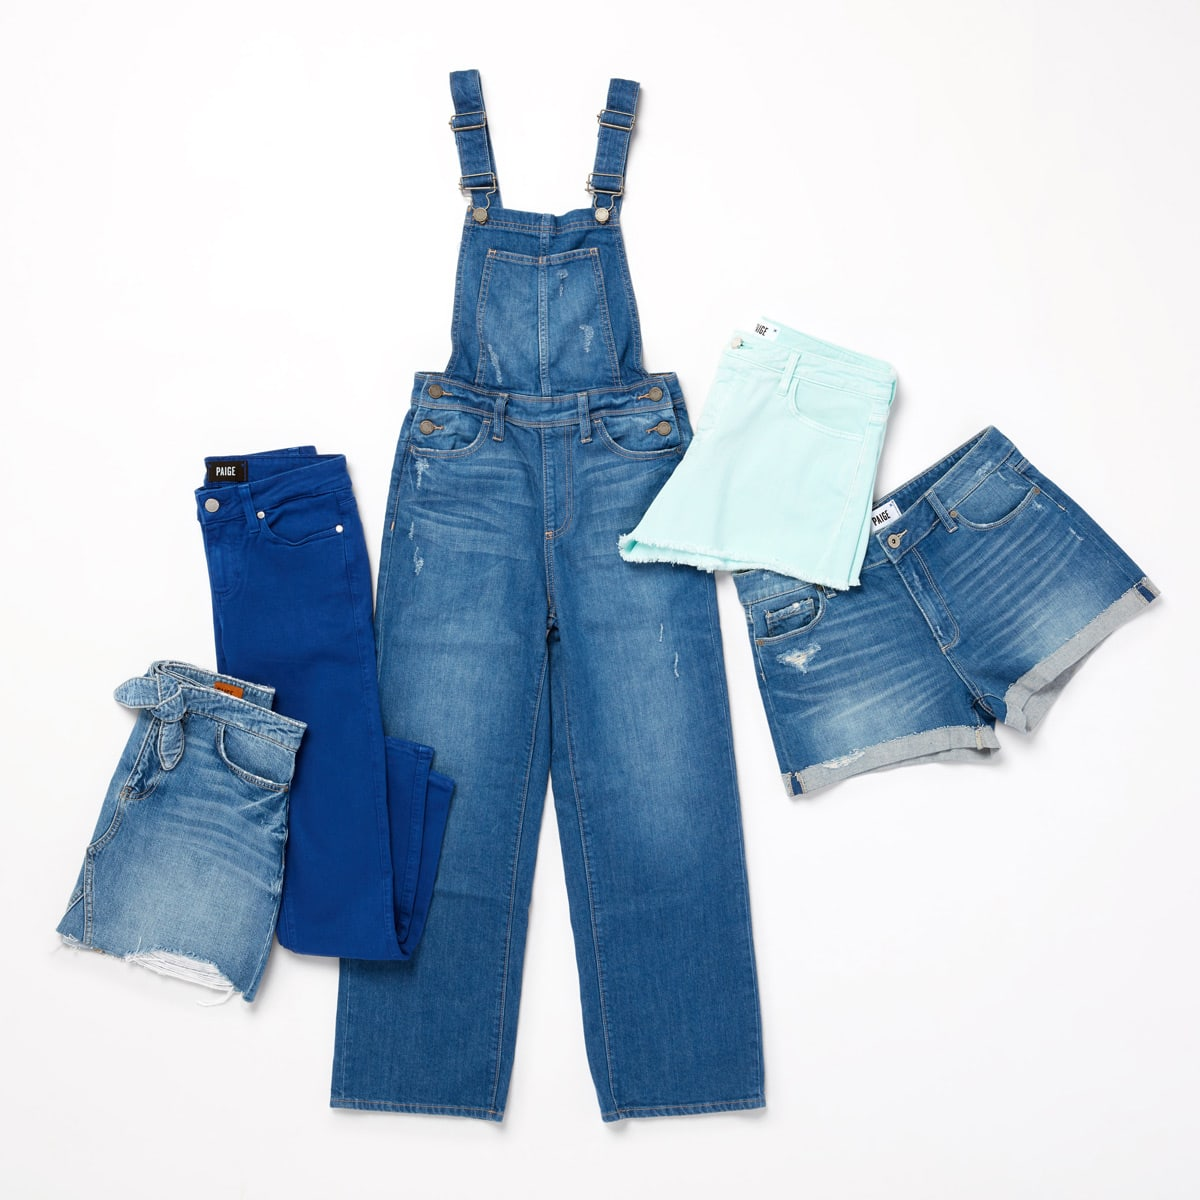 Paige denim also comes in overalls, skirts, shorts, and jackets